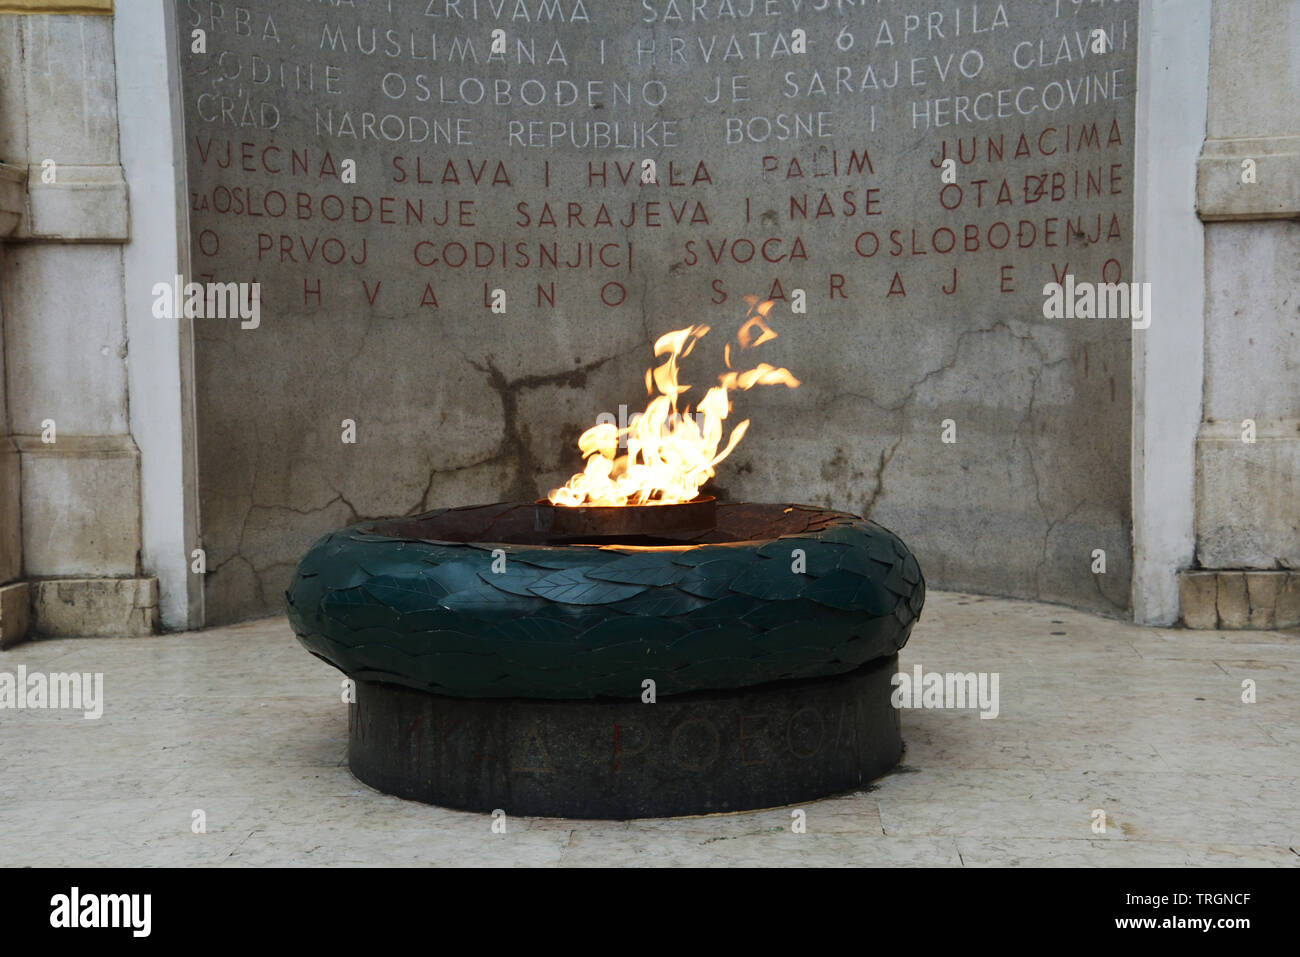 Visit of Sarajavo, memory of war - Stock Image